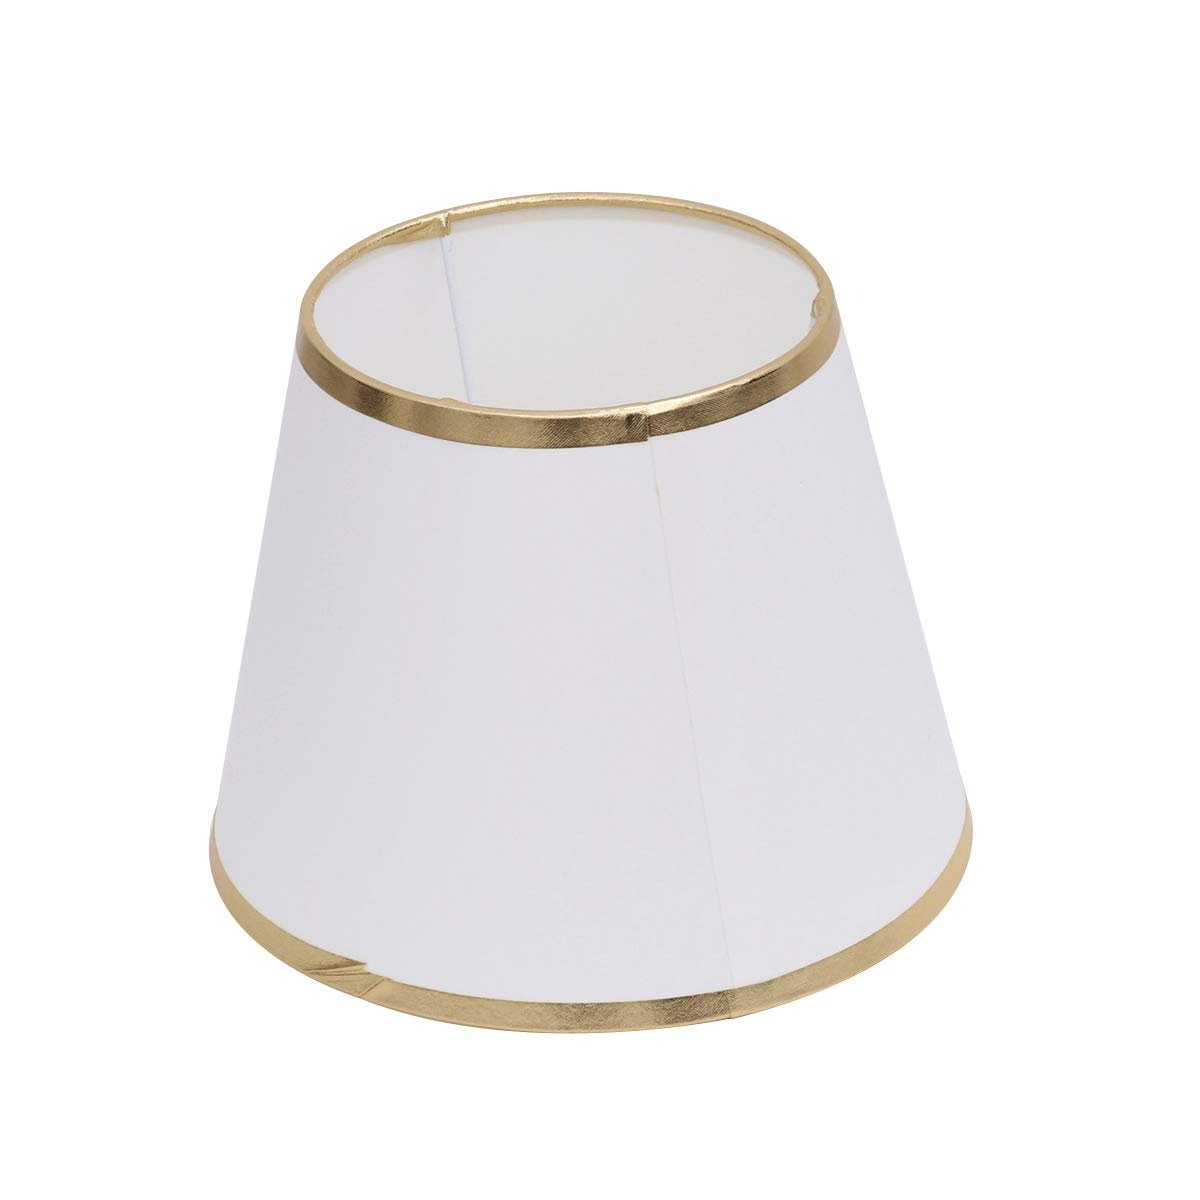 Vosarea Lamp shade fashionable decorative table lamp shade cover for home office hotel